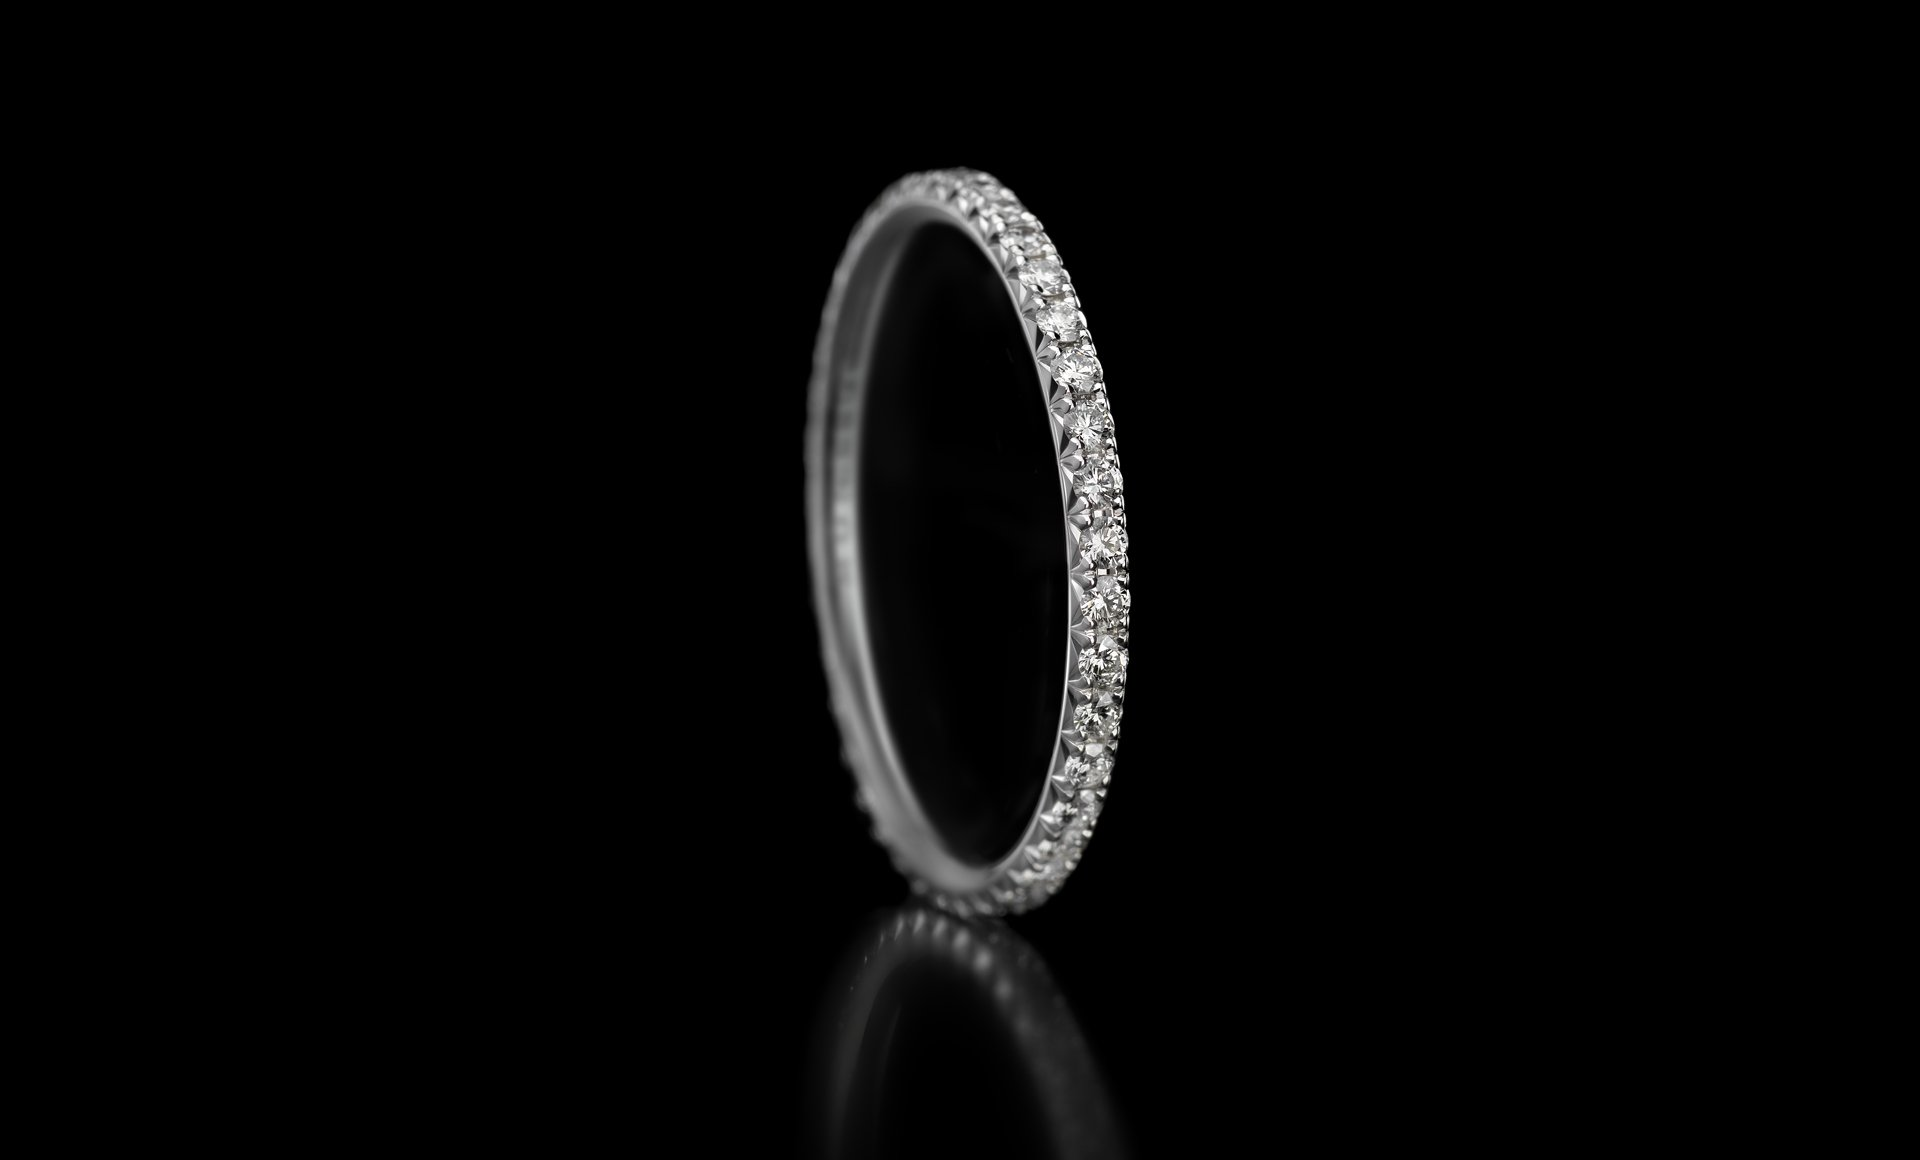 Montluc - Halo No 1. Eternity ring, full set in diamond - set with a continuous line of perfectly selected, round cut diamonds.